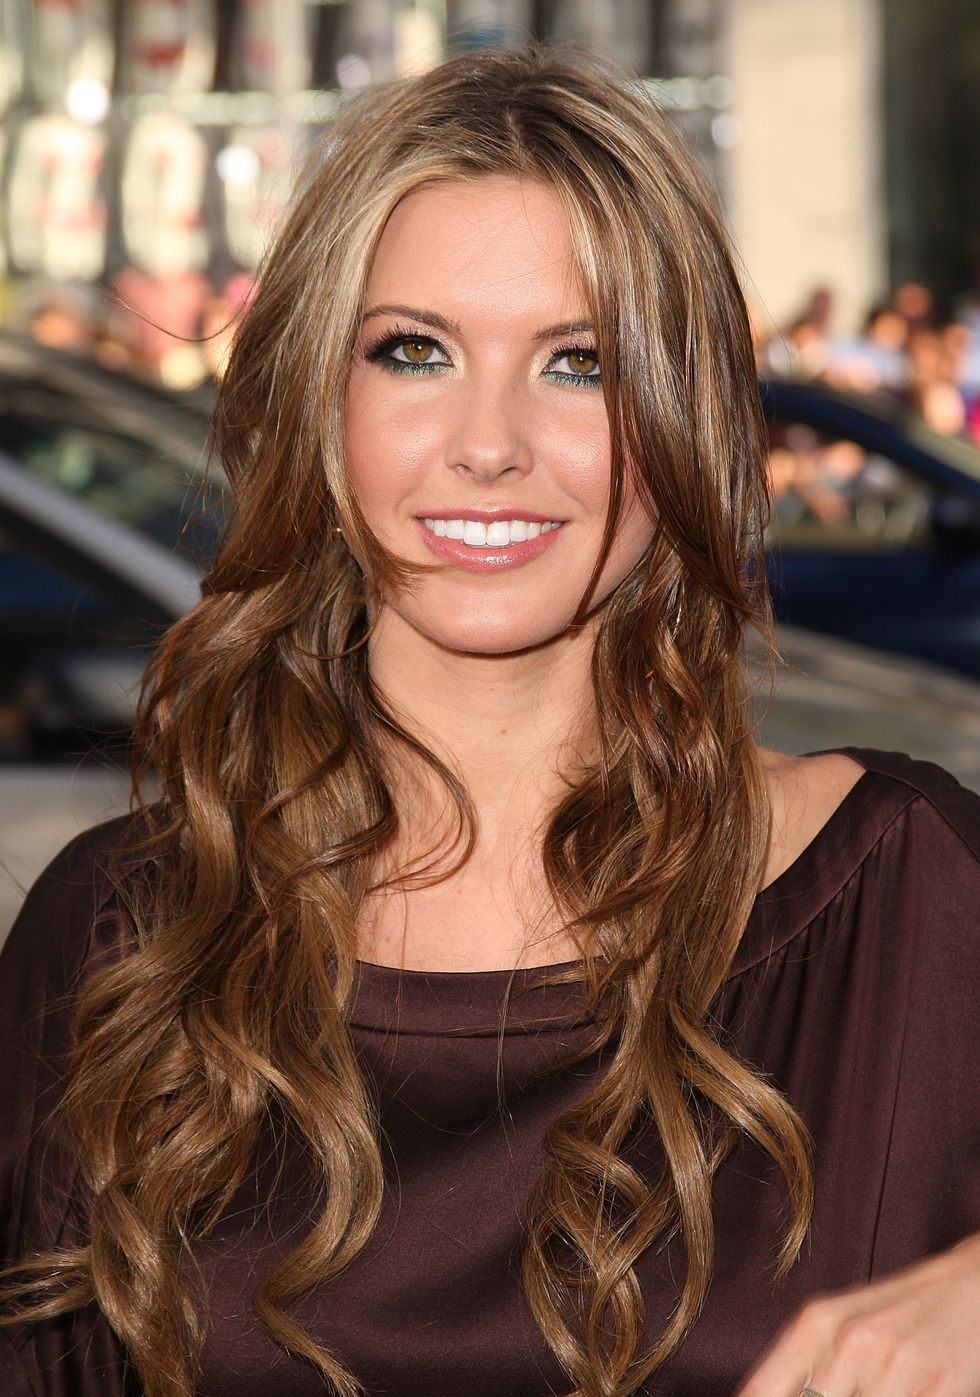 audrina-patridge-the-hangover-premiere-in-los-angeles-01